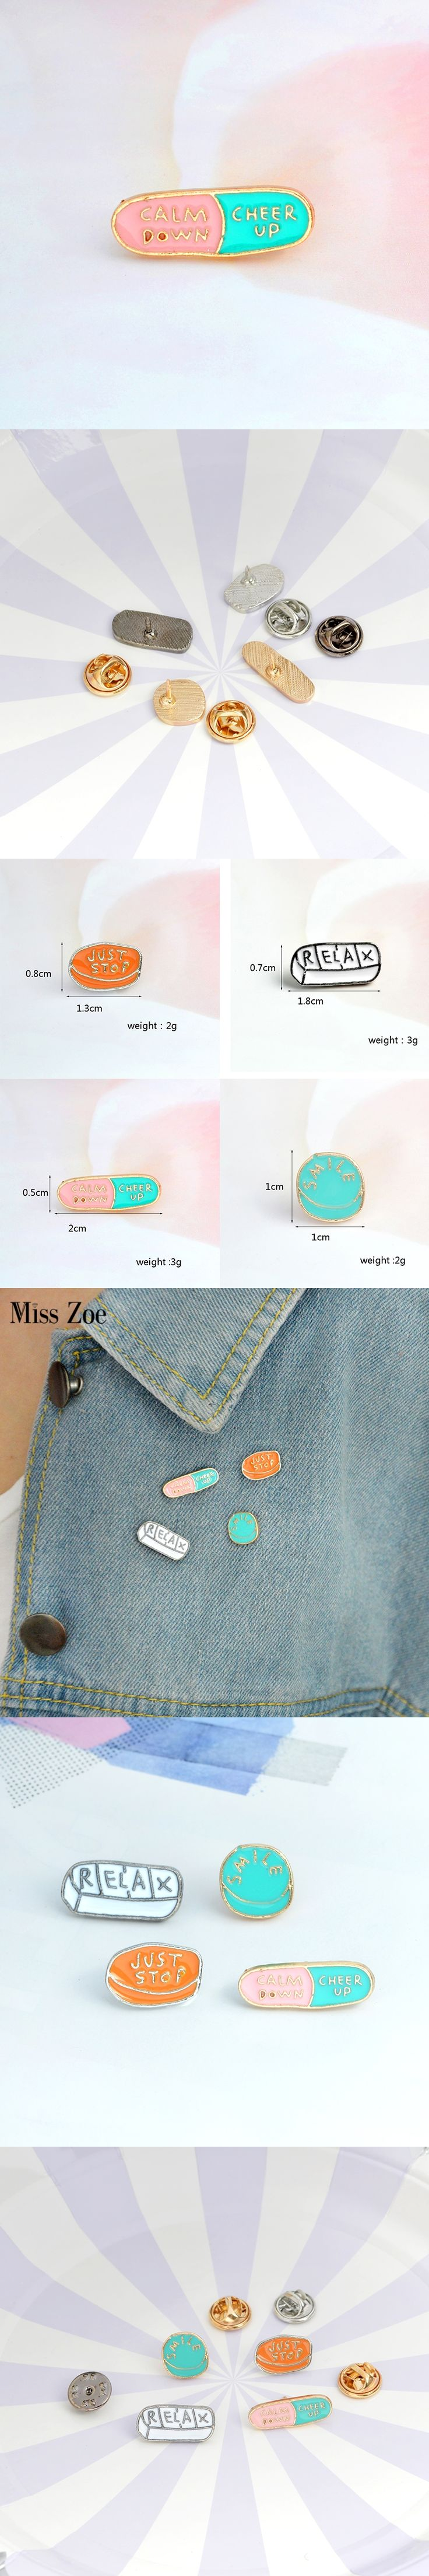 4pcs/set Cartoon Honest Meds pins RELAX JUST STOP SMILE CALM DOWN CHEER UP Brooch Button Pin Denim Jacket Pin Badge Jewelry Gift